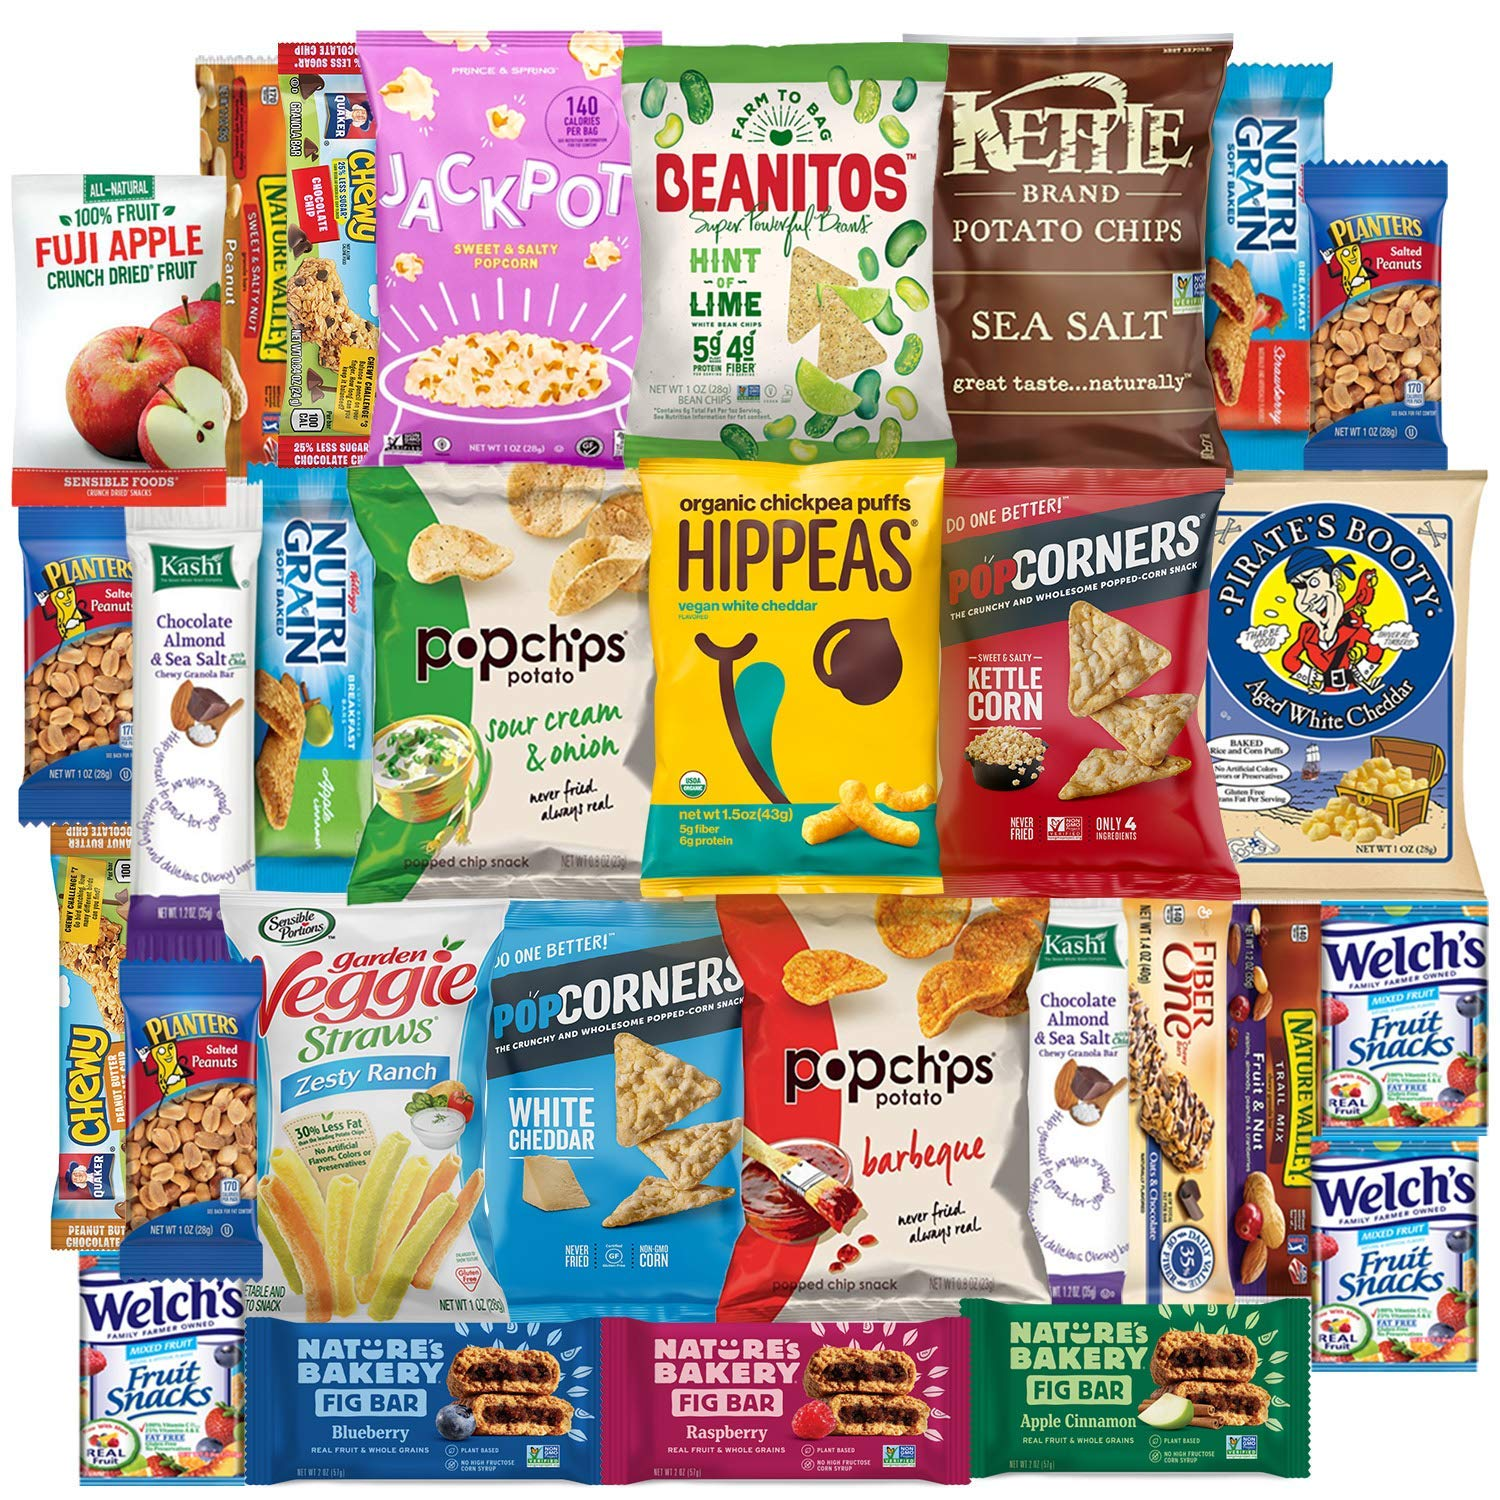 Variety Fun Healthy Office Snacks (200 Count) - Bulk Assortment - Over 16 Pounds of Chips Cookies & Candy